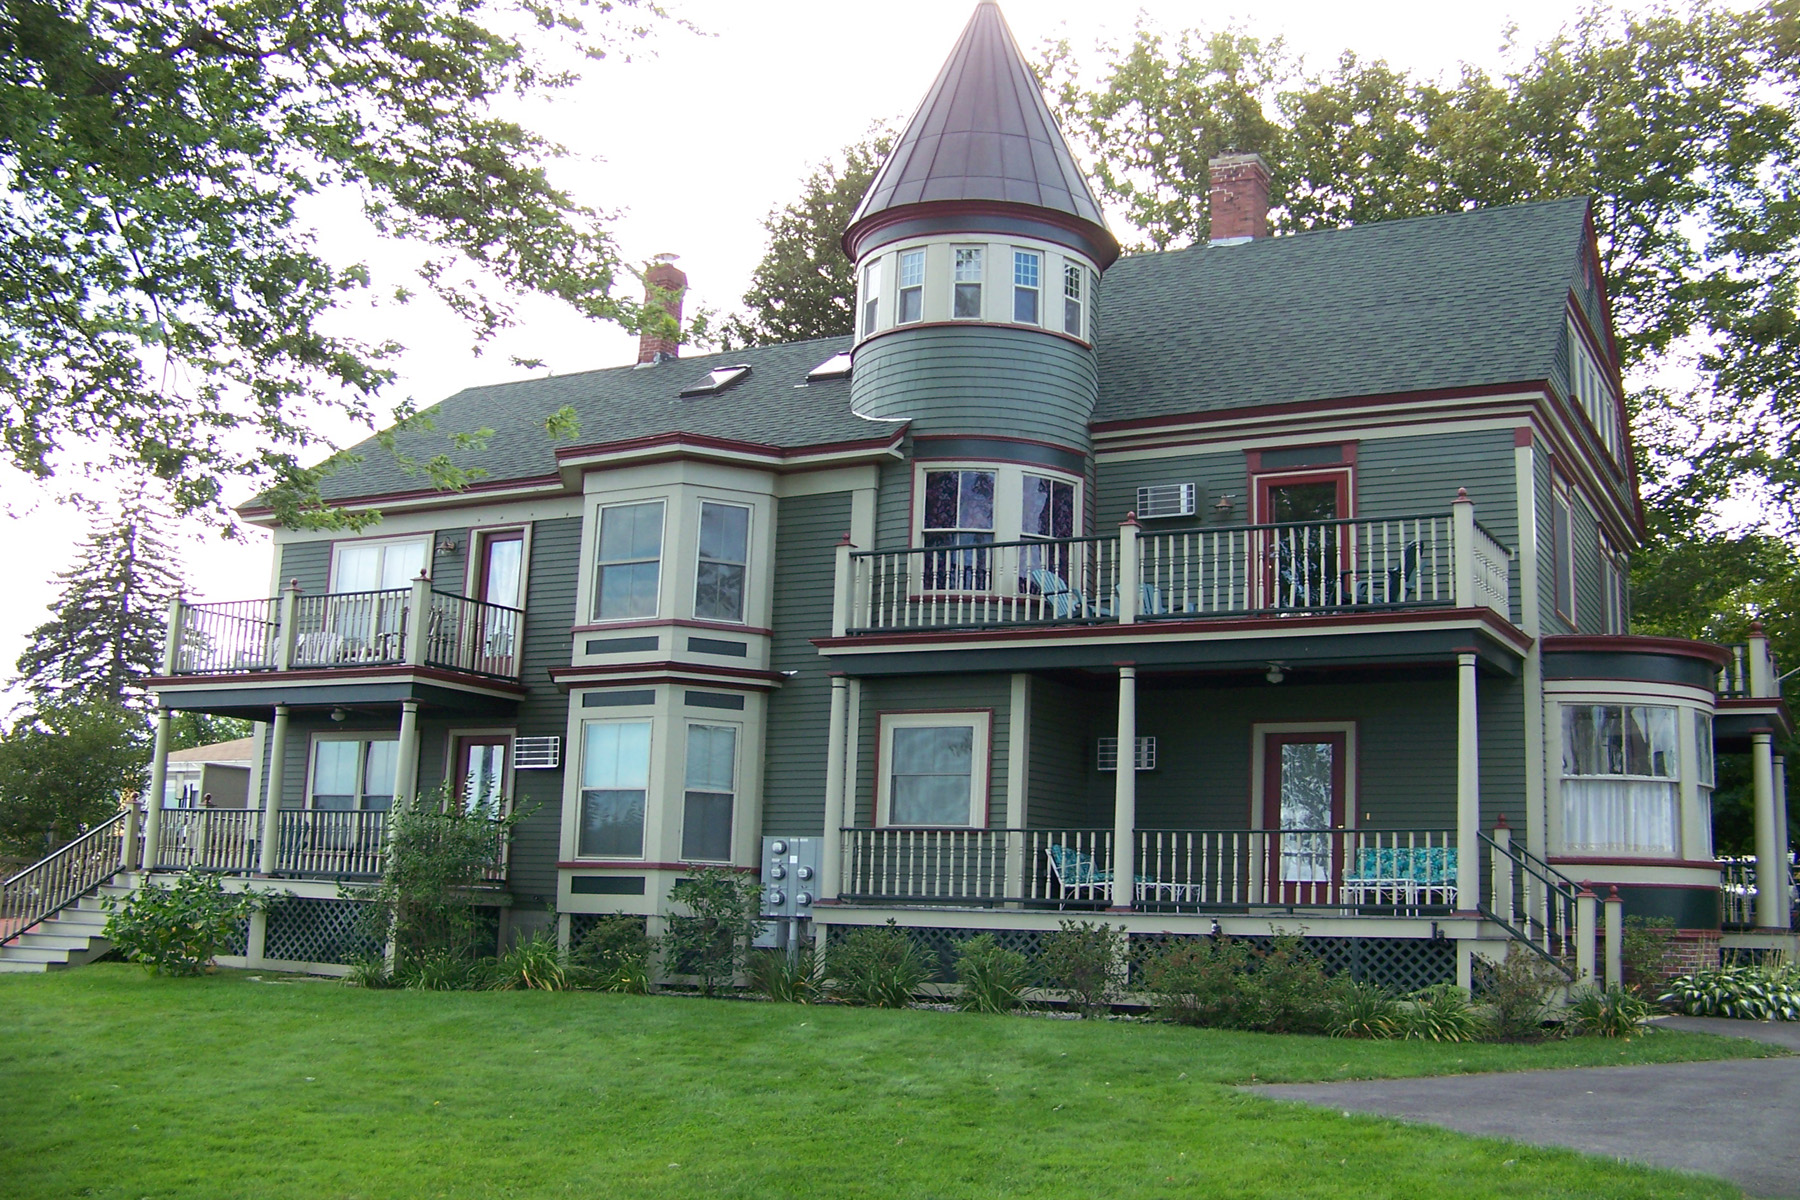 Villa per Vendita alle ore Lady by the Lake 22 North Main St Wolfeboro, New Hampshire 03894 Stati Uniti